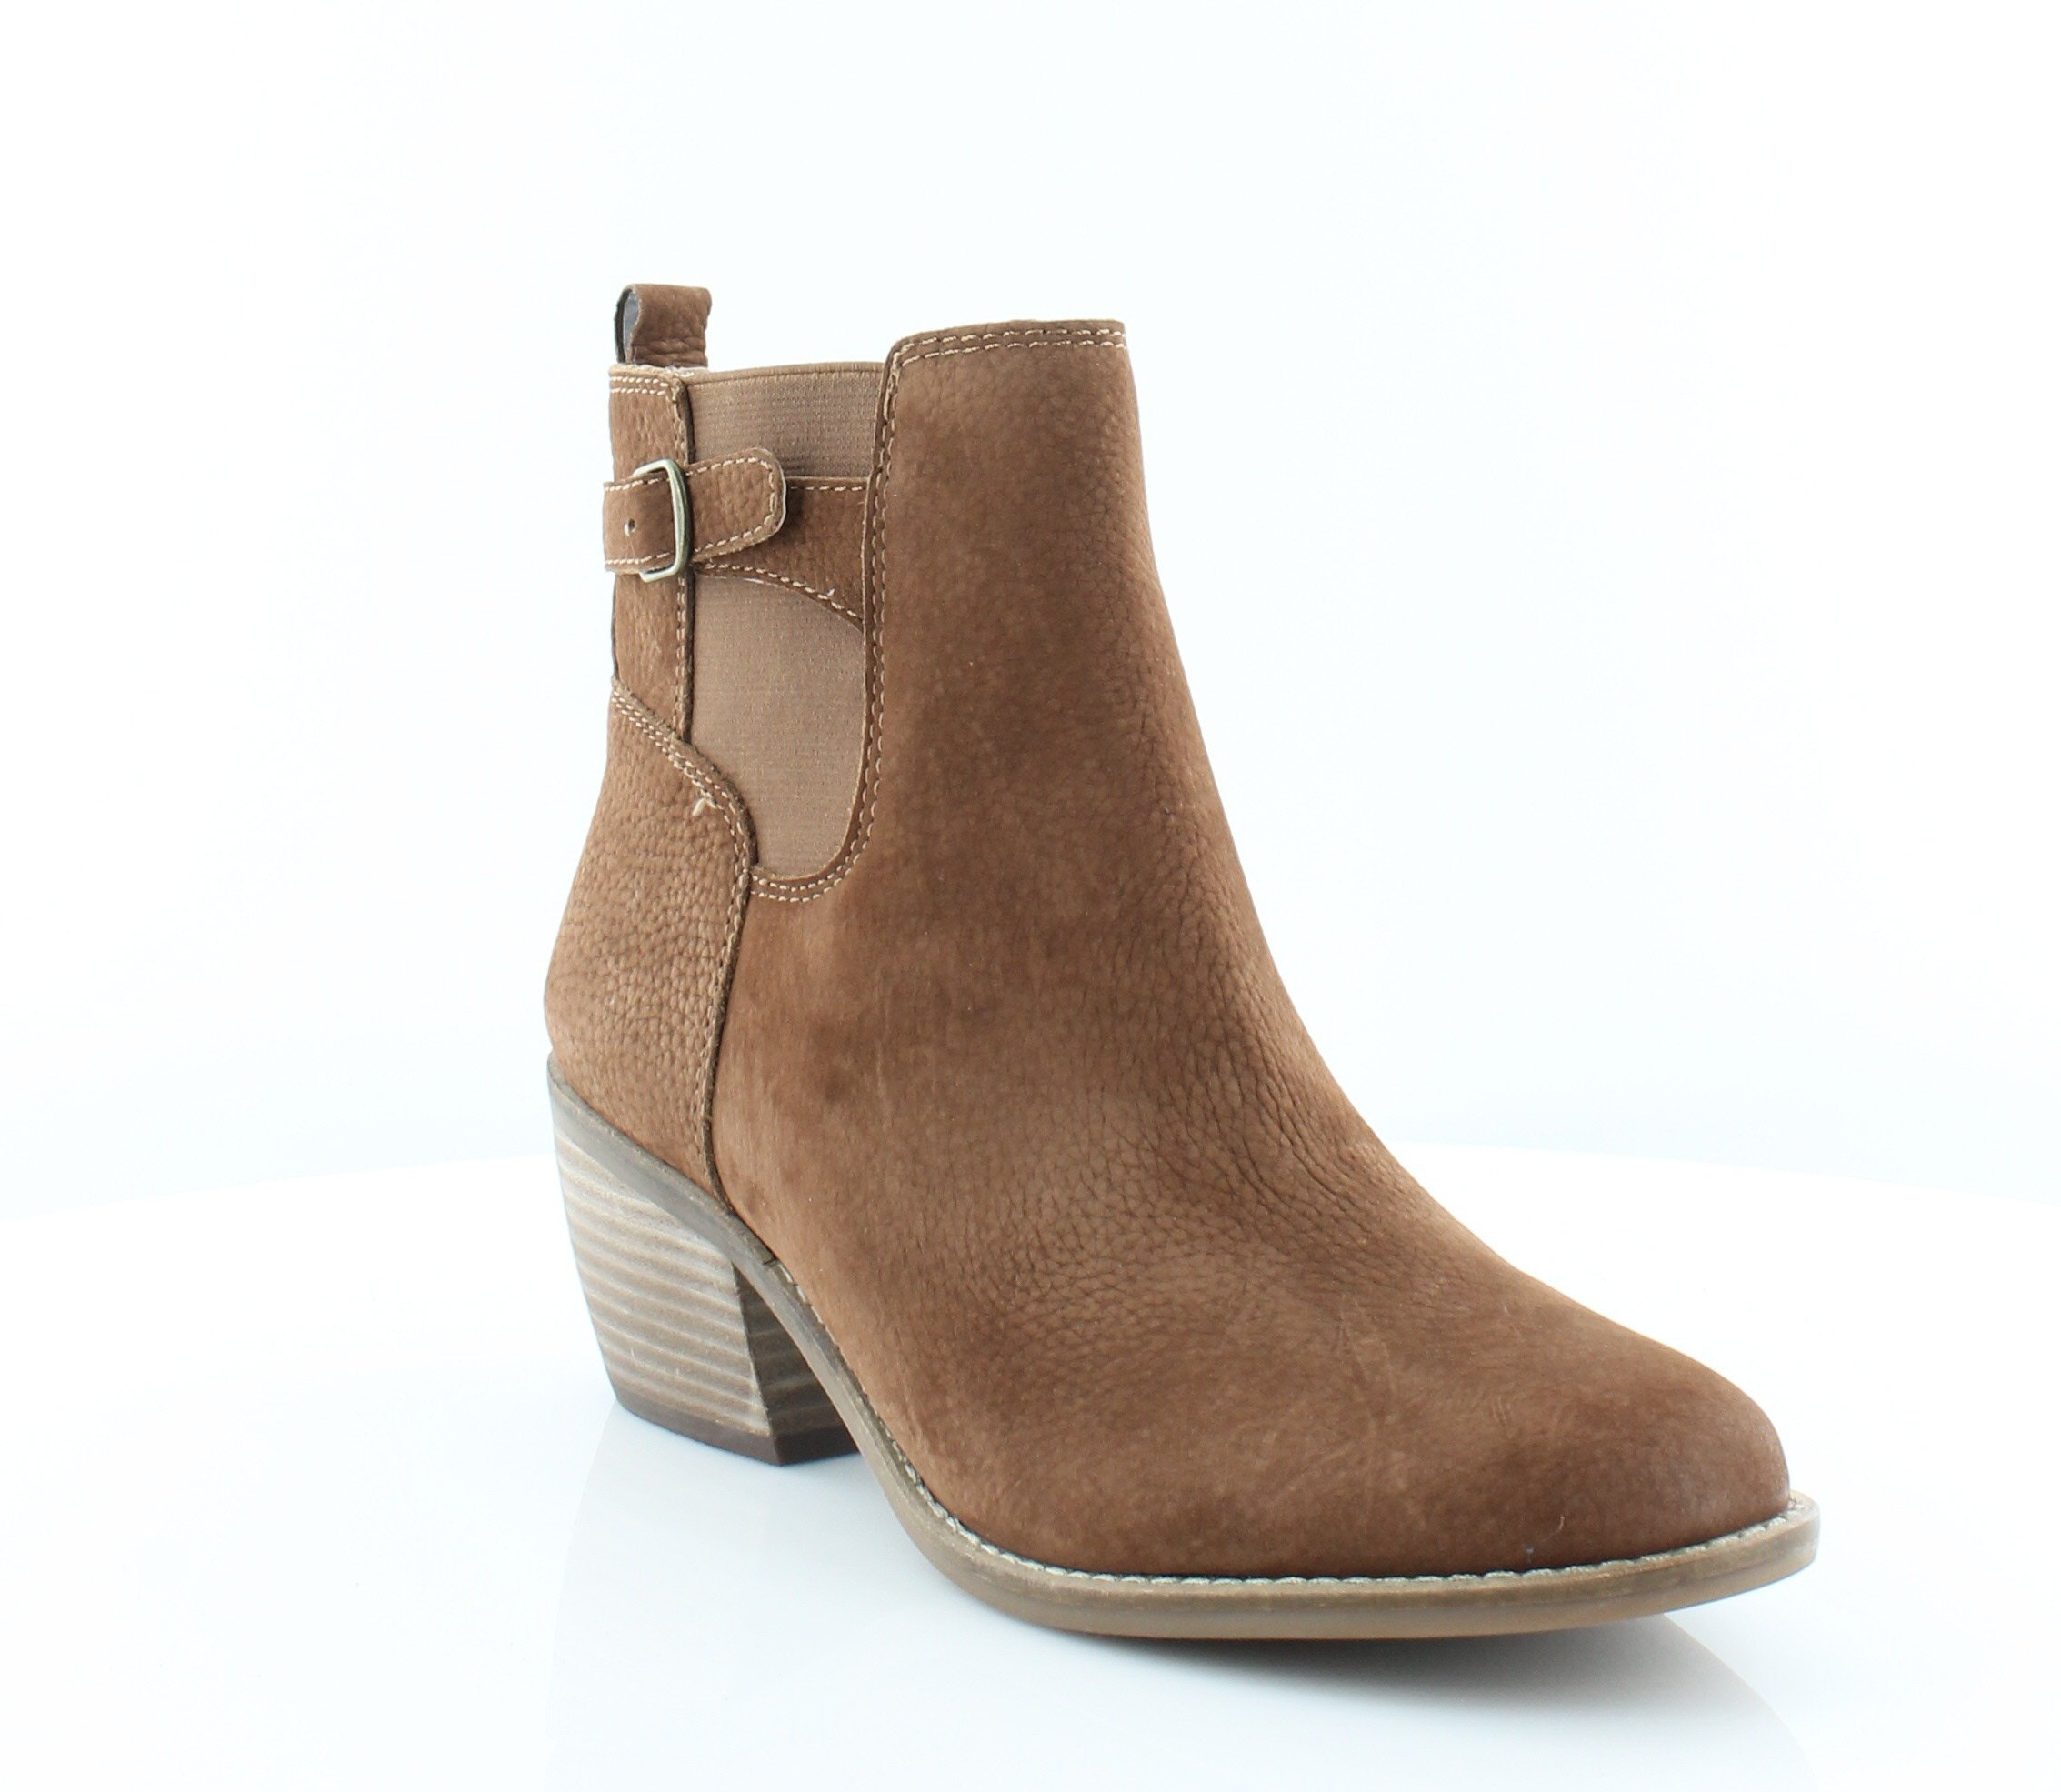 Lucky Brand Khoraa Women's Boots Toffee Size 5.5 M